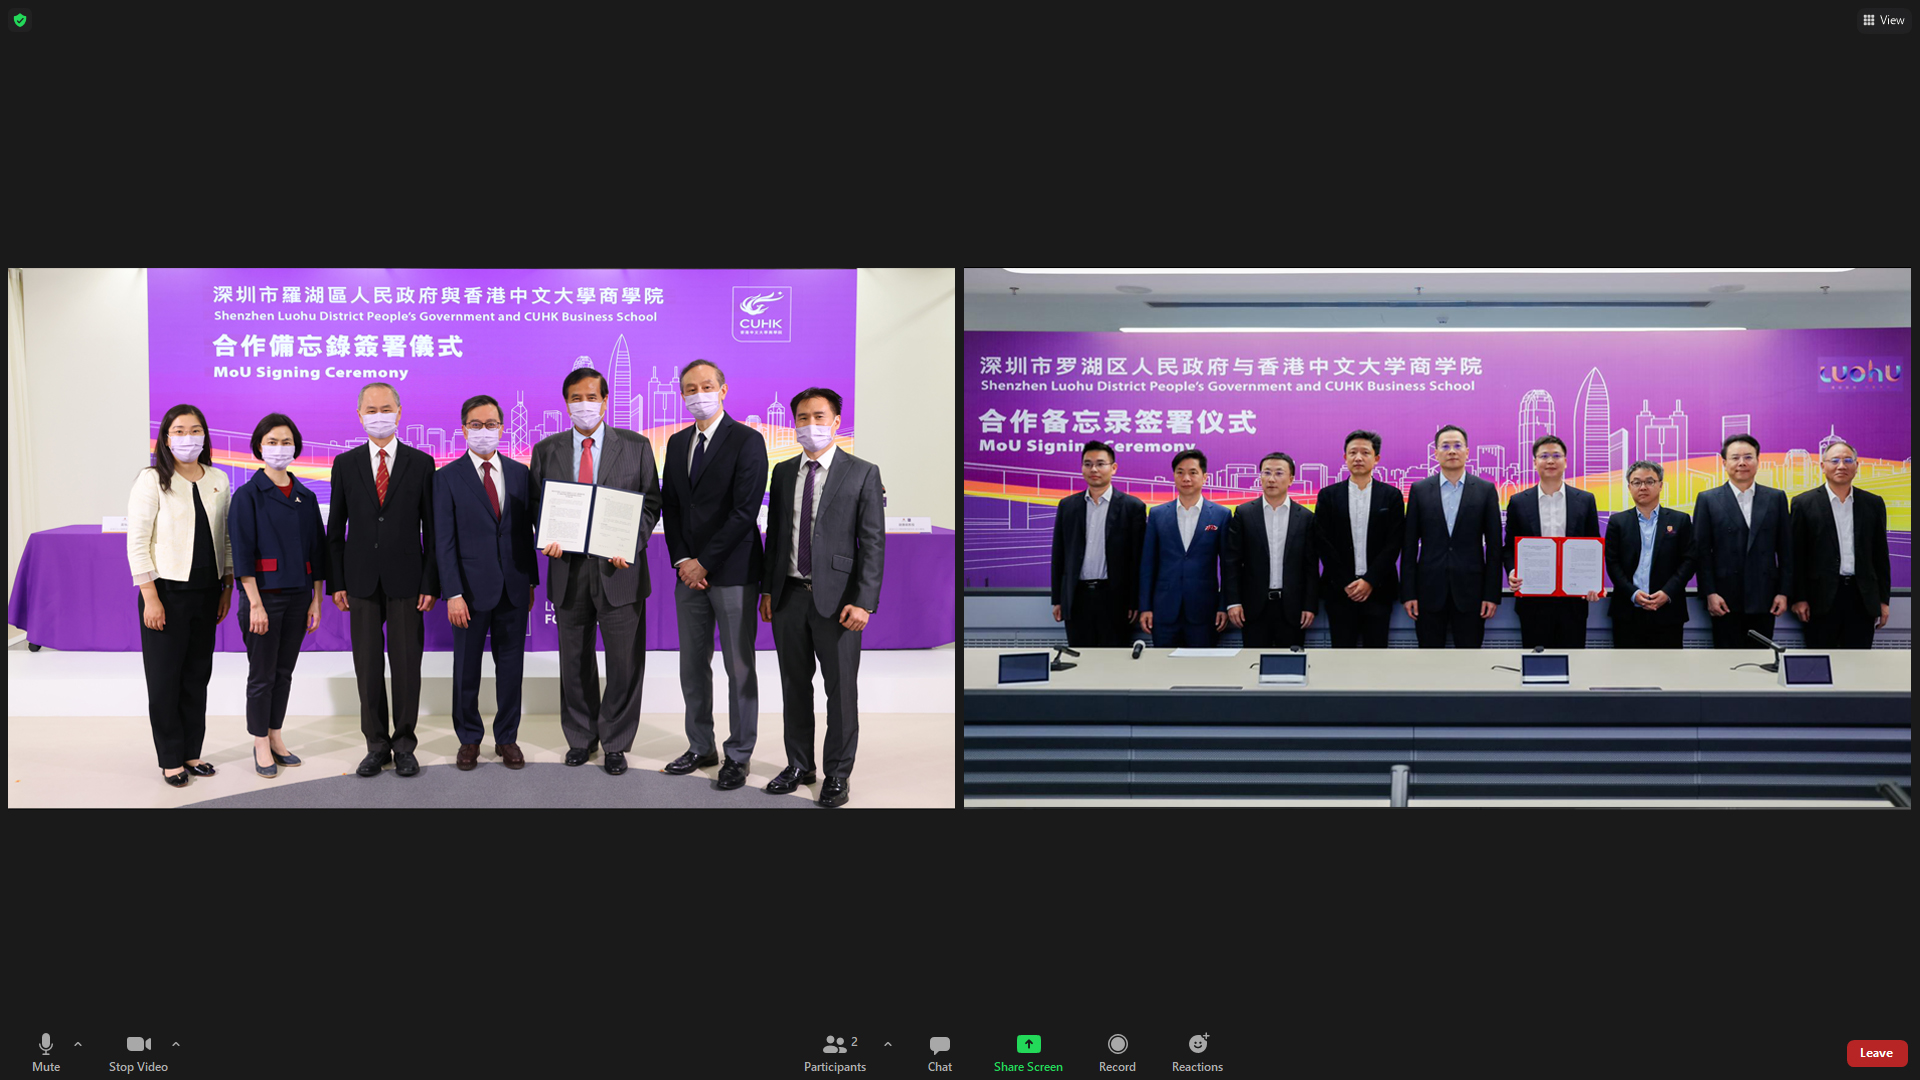 MoU Signed Between The Chinese University of Hong Kong Business School and Shenzhen Luohu District Peoples Government